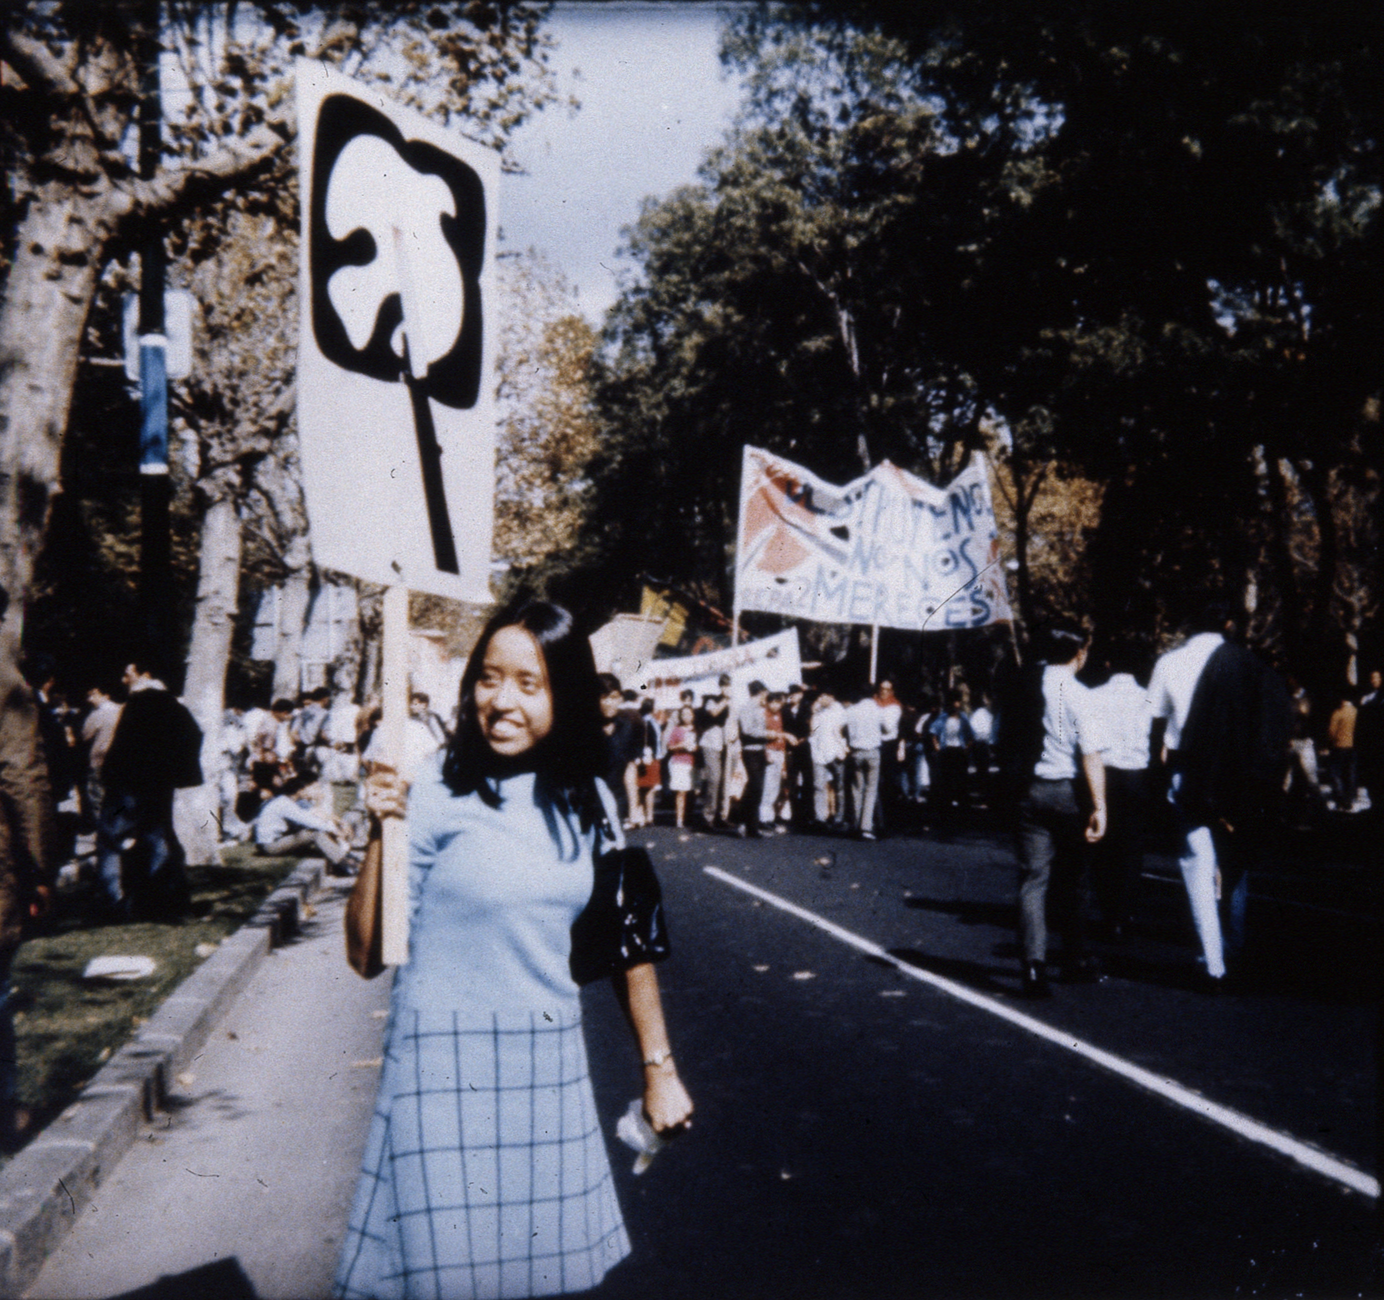 a person in sky blue attire holding a sign with symbol of dove